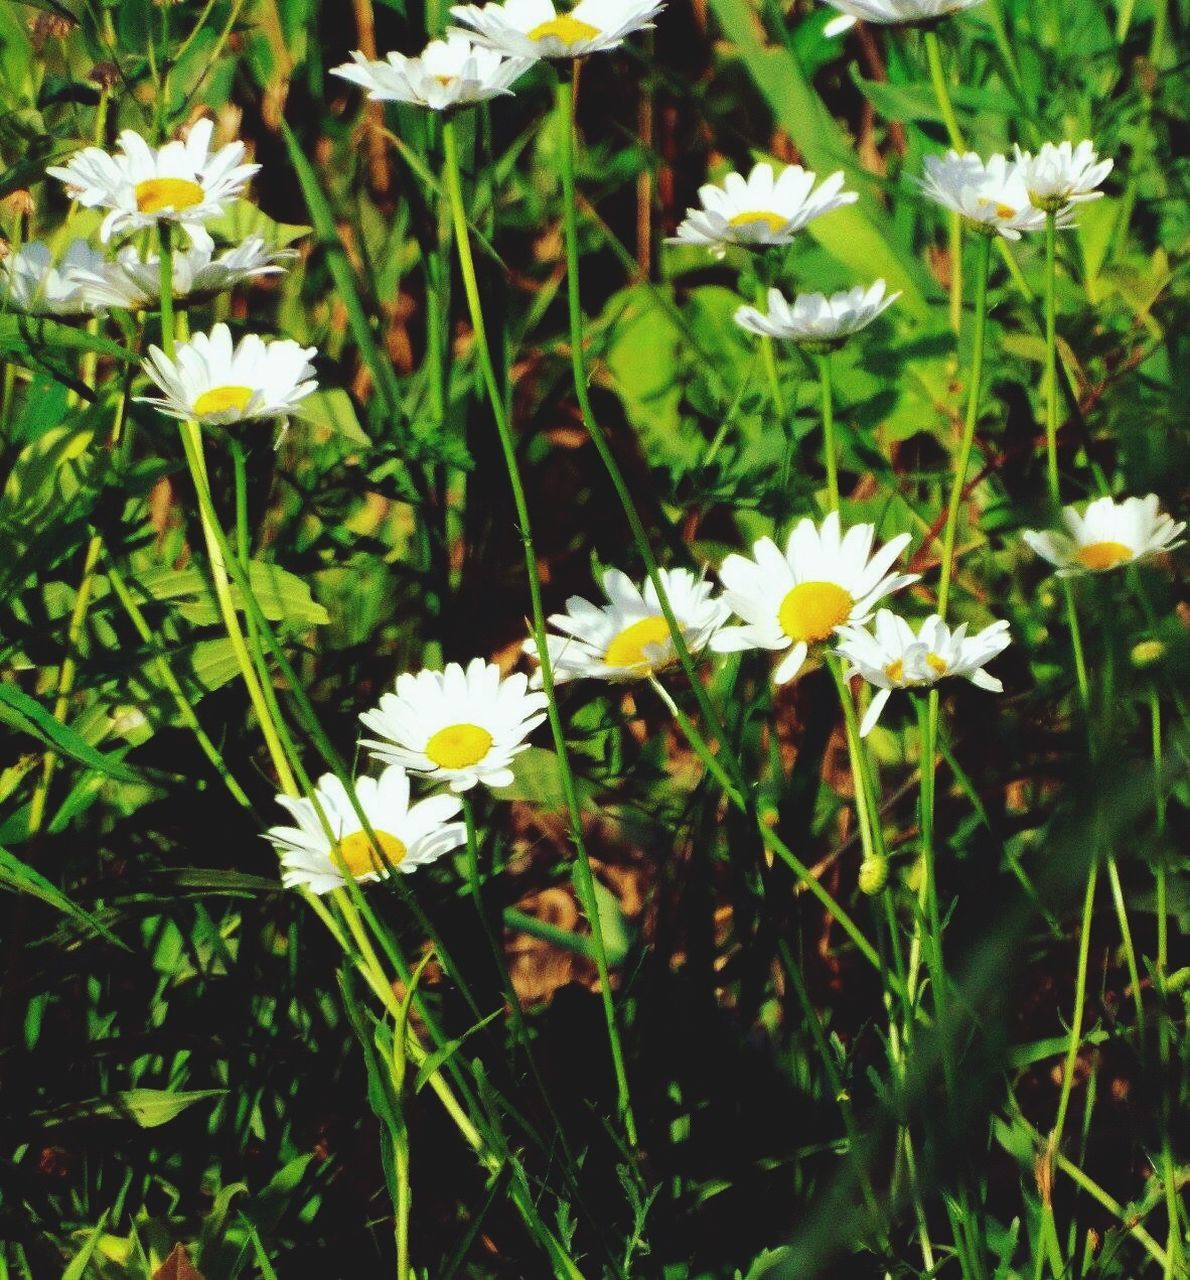 flower, fragility, petal, growth, freshness, beauty in nature, yellow, nature, white color, flower head, plant, blooming, day, field, outdoors, no people, close-up